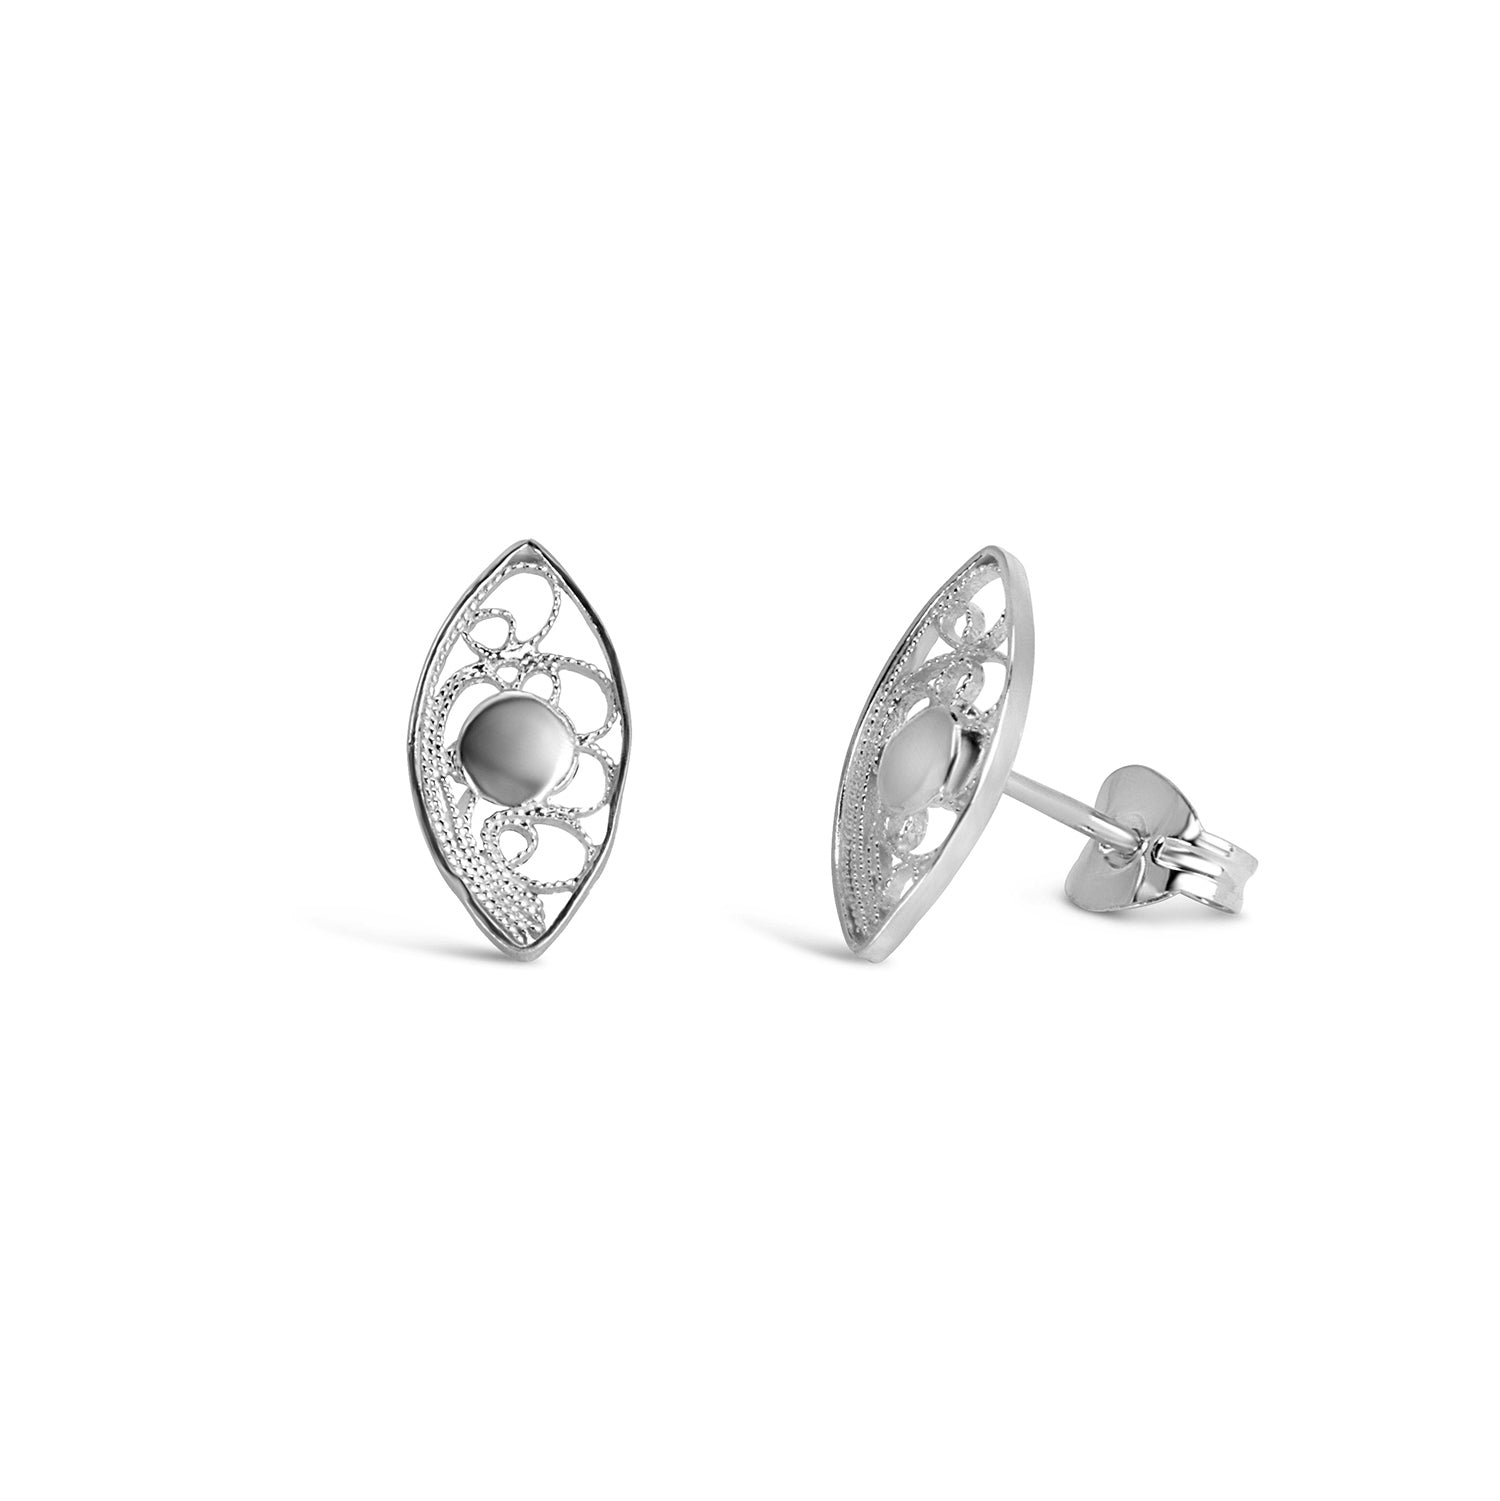 Almond Stud Earrings. Silver